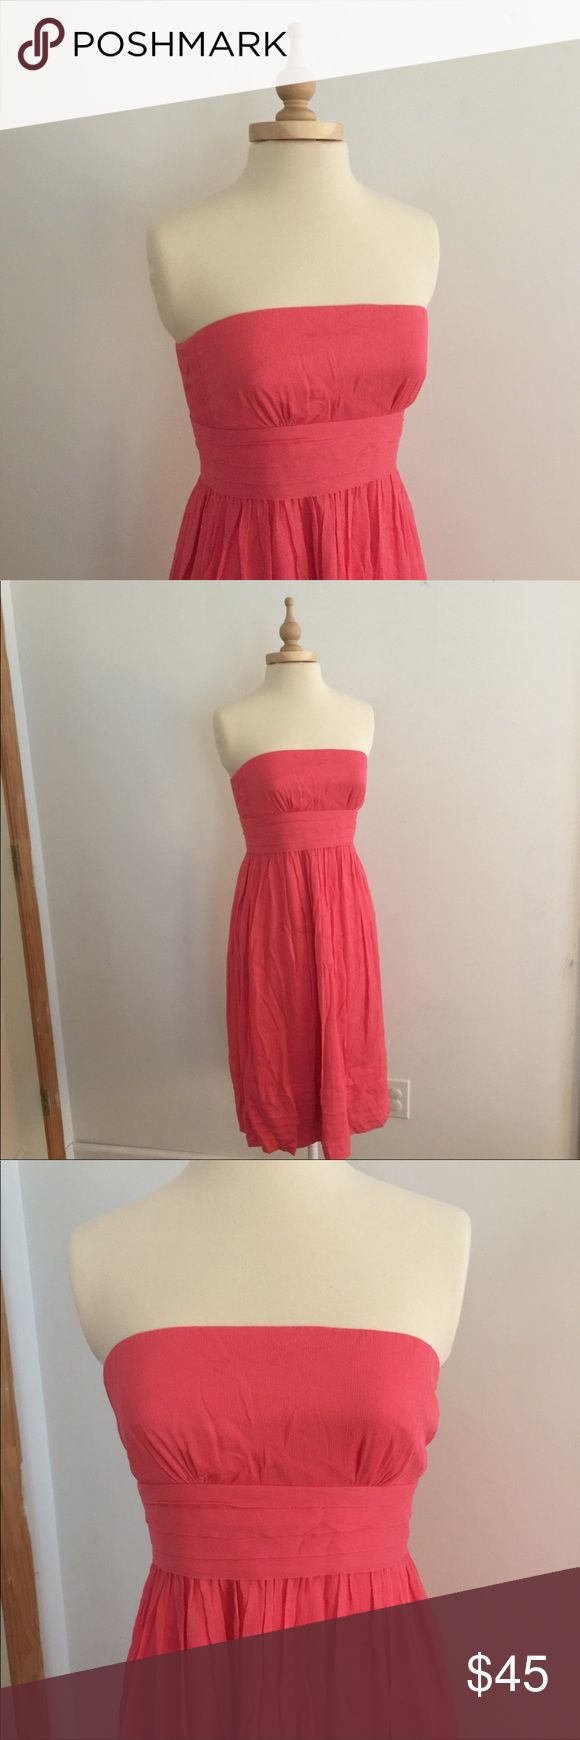 💕SALE💕 J Crew Silk Dress 100% silk strapless dress. Beautiful pink/coral color. Can be dressed up for a wedding or dressed down for summer fun. Dress is lined. Only worn once, excellent condition. J. Crew Dresses Strapless